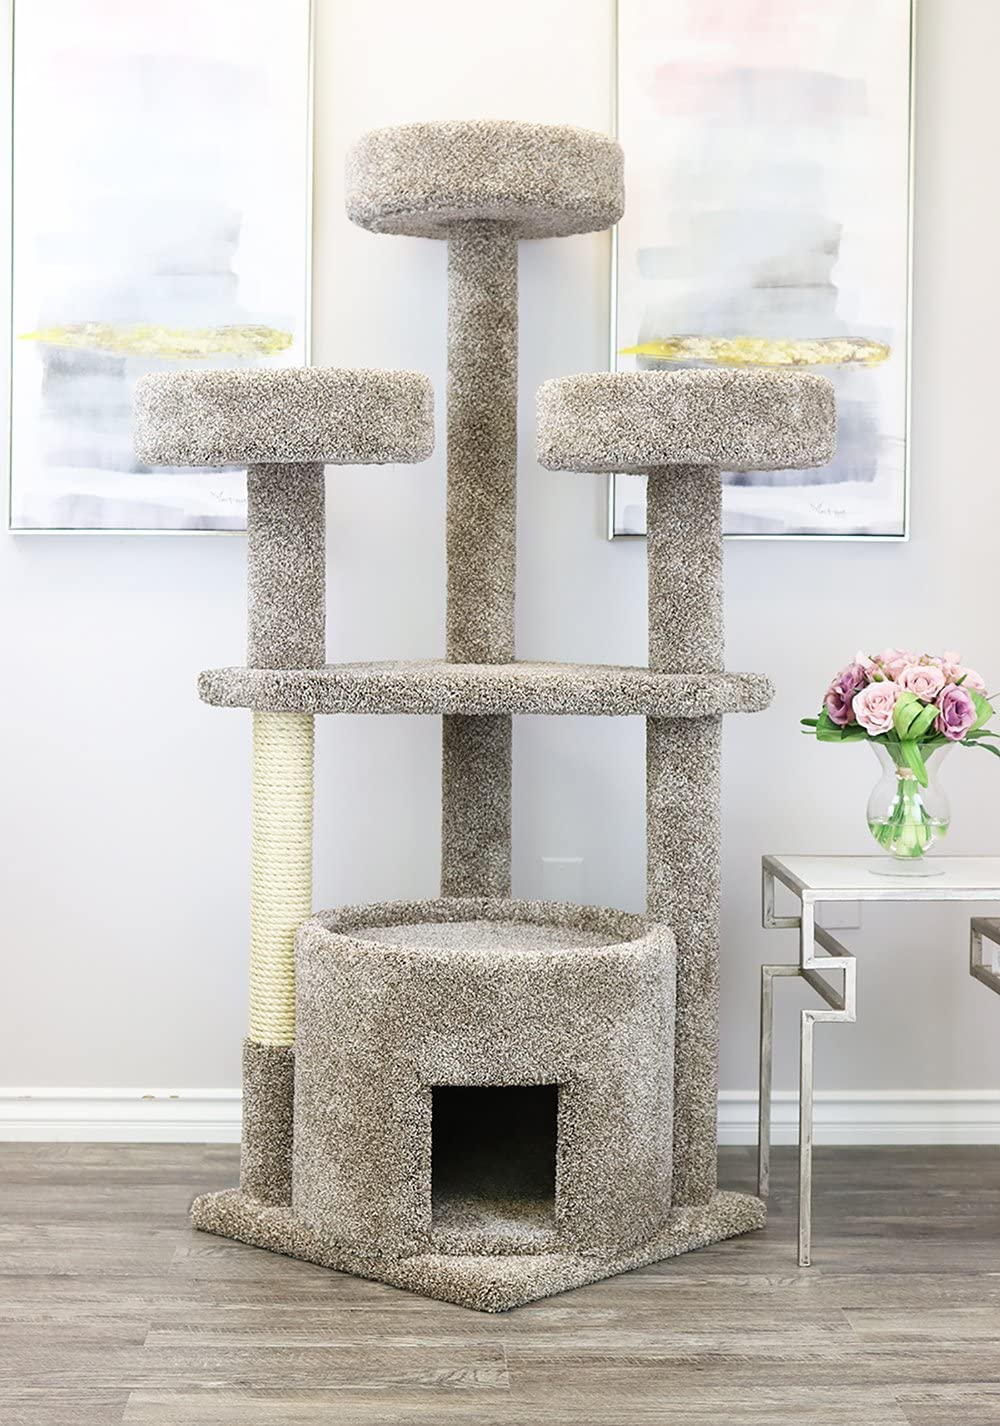 Prestige Cat Trees 130014-Neutral Main Coon Cat House Cat Tree